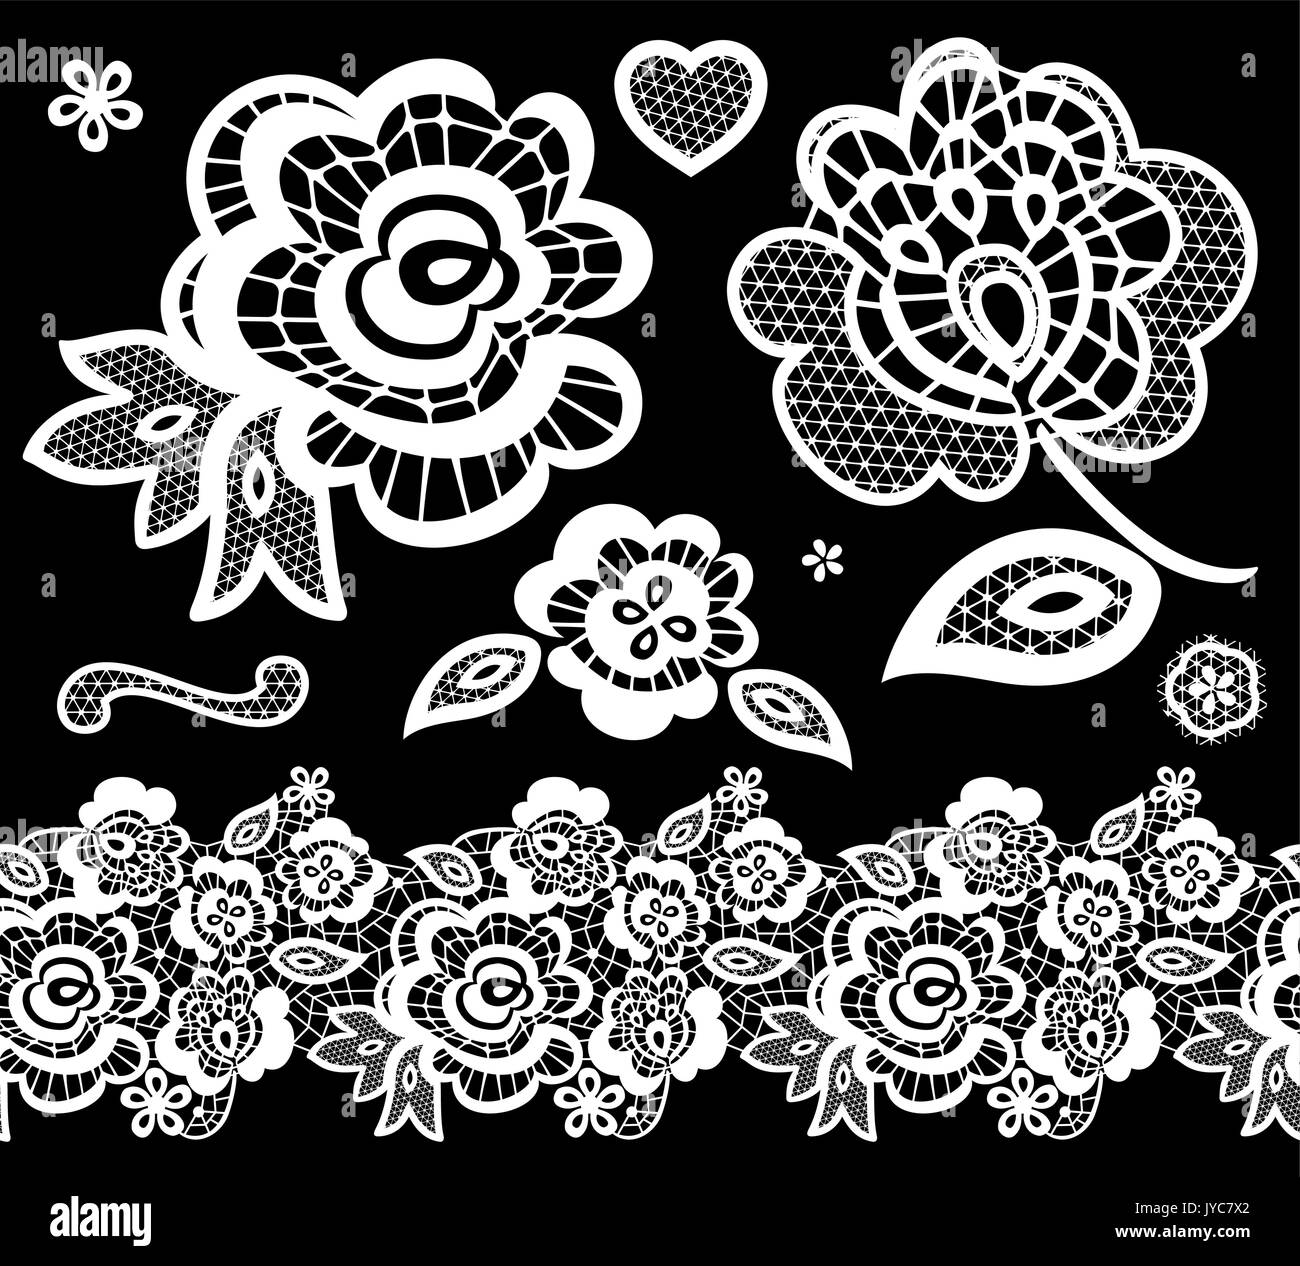 Embroidery Design Stock Photos & Embroidery Design Stock Images - Alamy